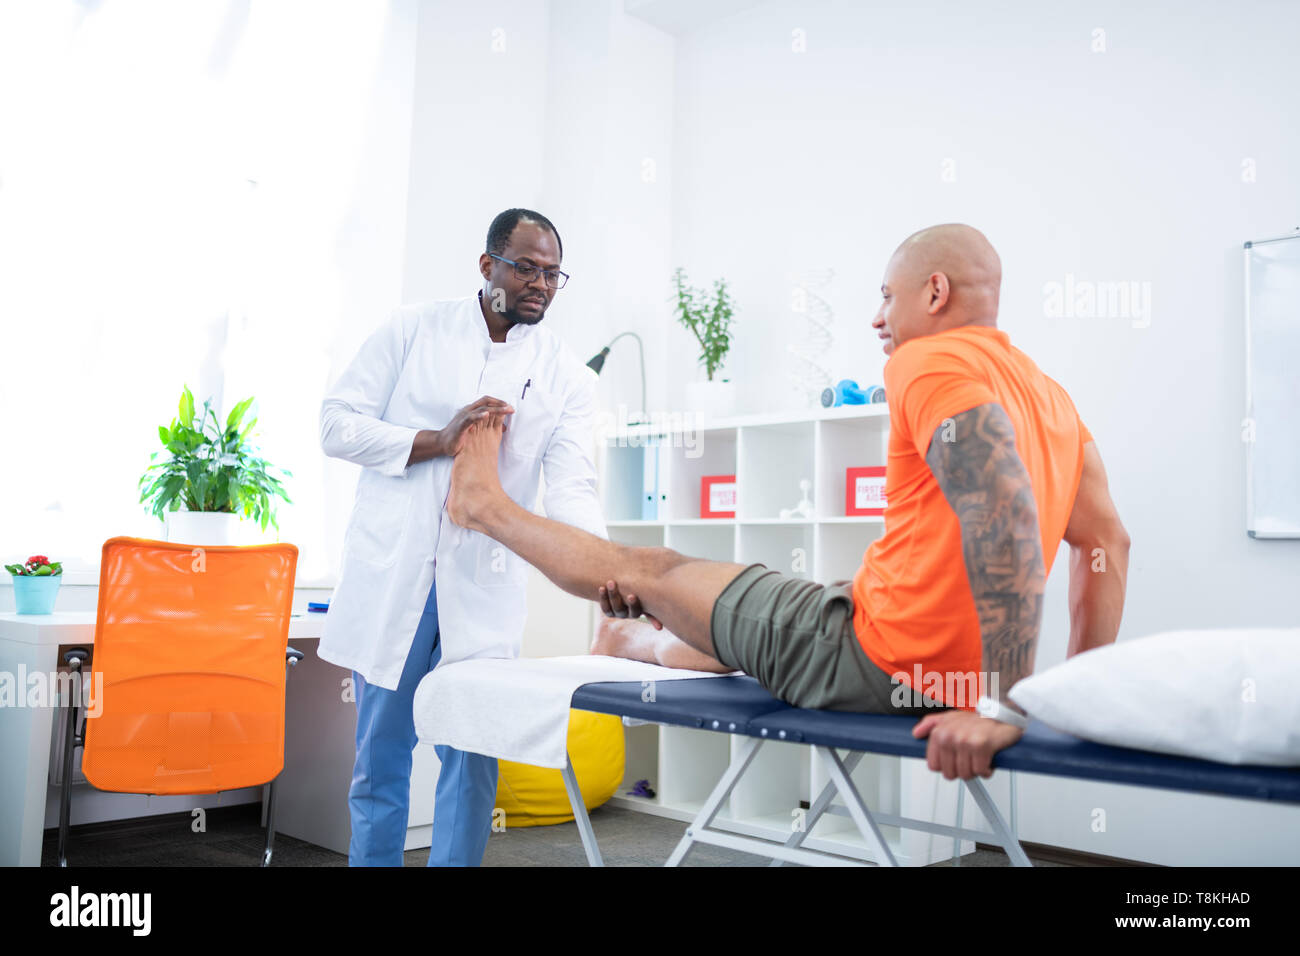 Tattooed sportsman smiling enjoying physical therapy for leg - Stock Image